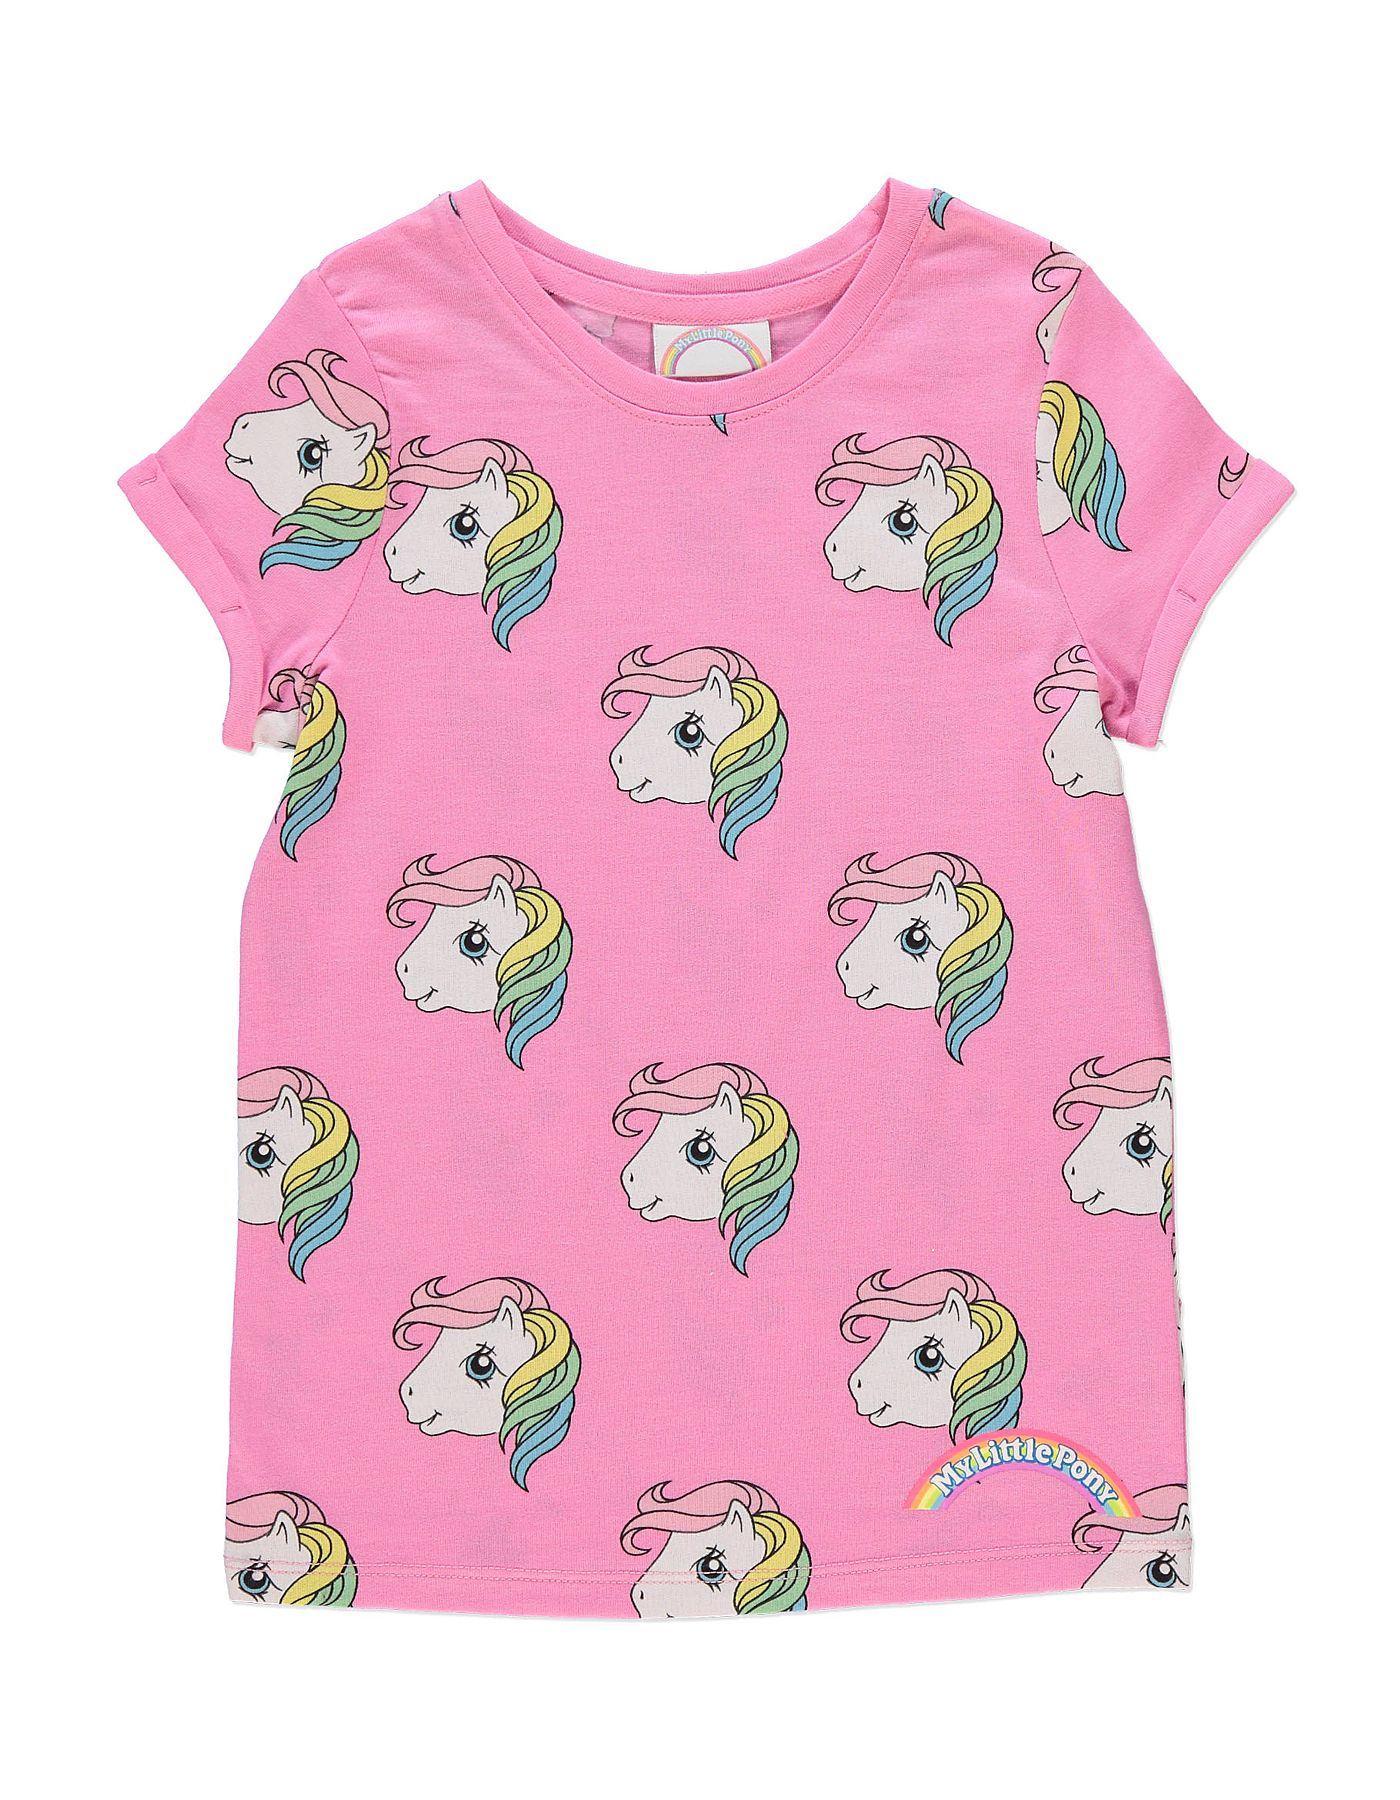 My Little Pony T-shirt   Girls   George at ASDA   Things I Want to ...